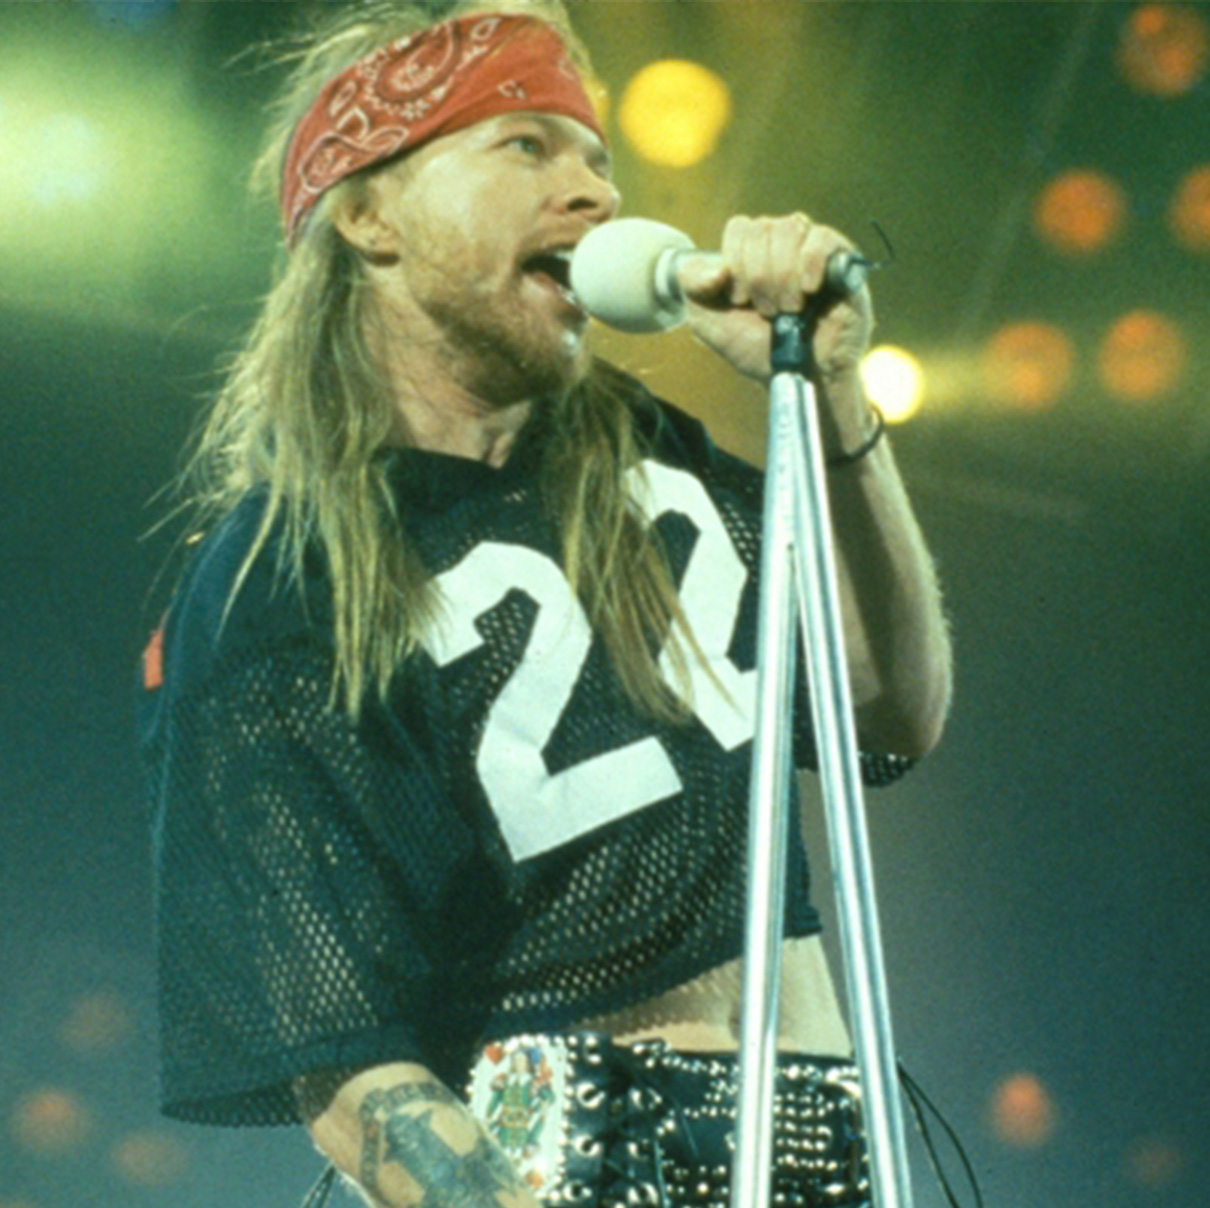 Axl Rose (or whatever his real name is) in 1992